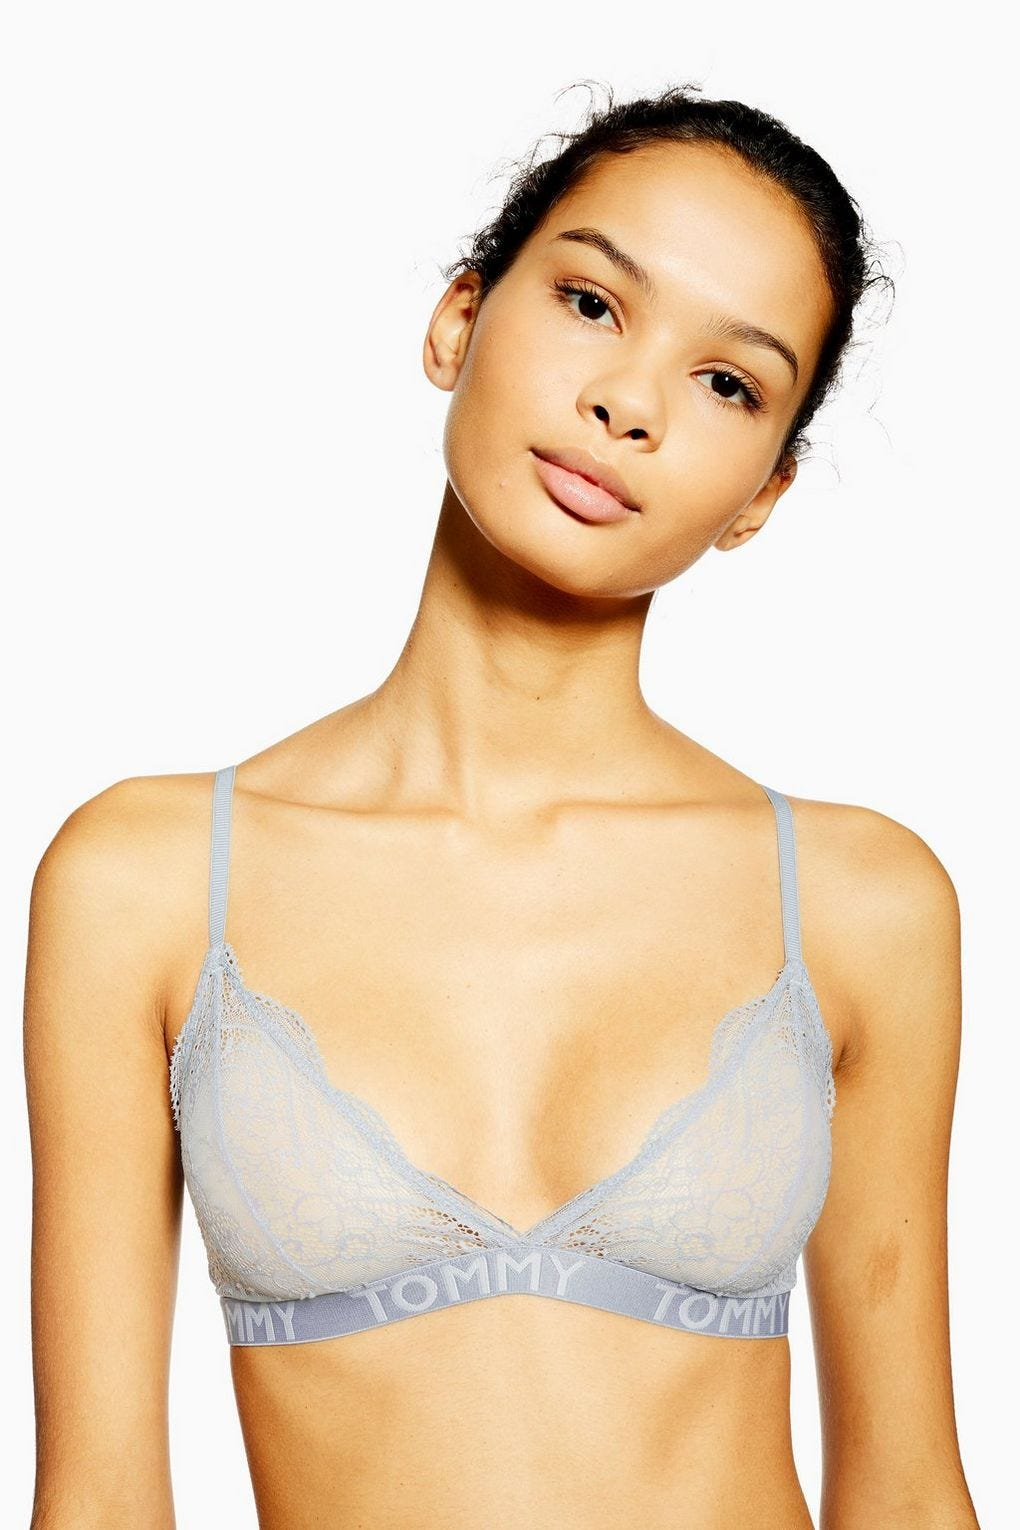 bbfe611ff23 Best Bras For Small Boobs - Small Cup Size